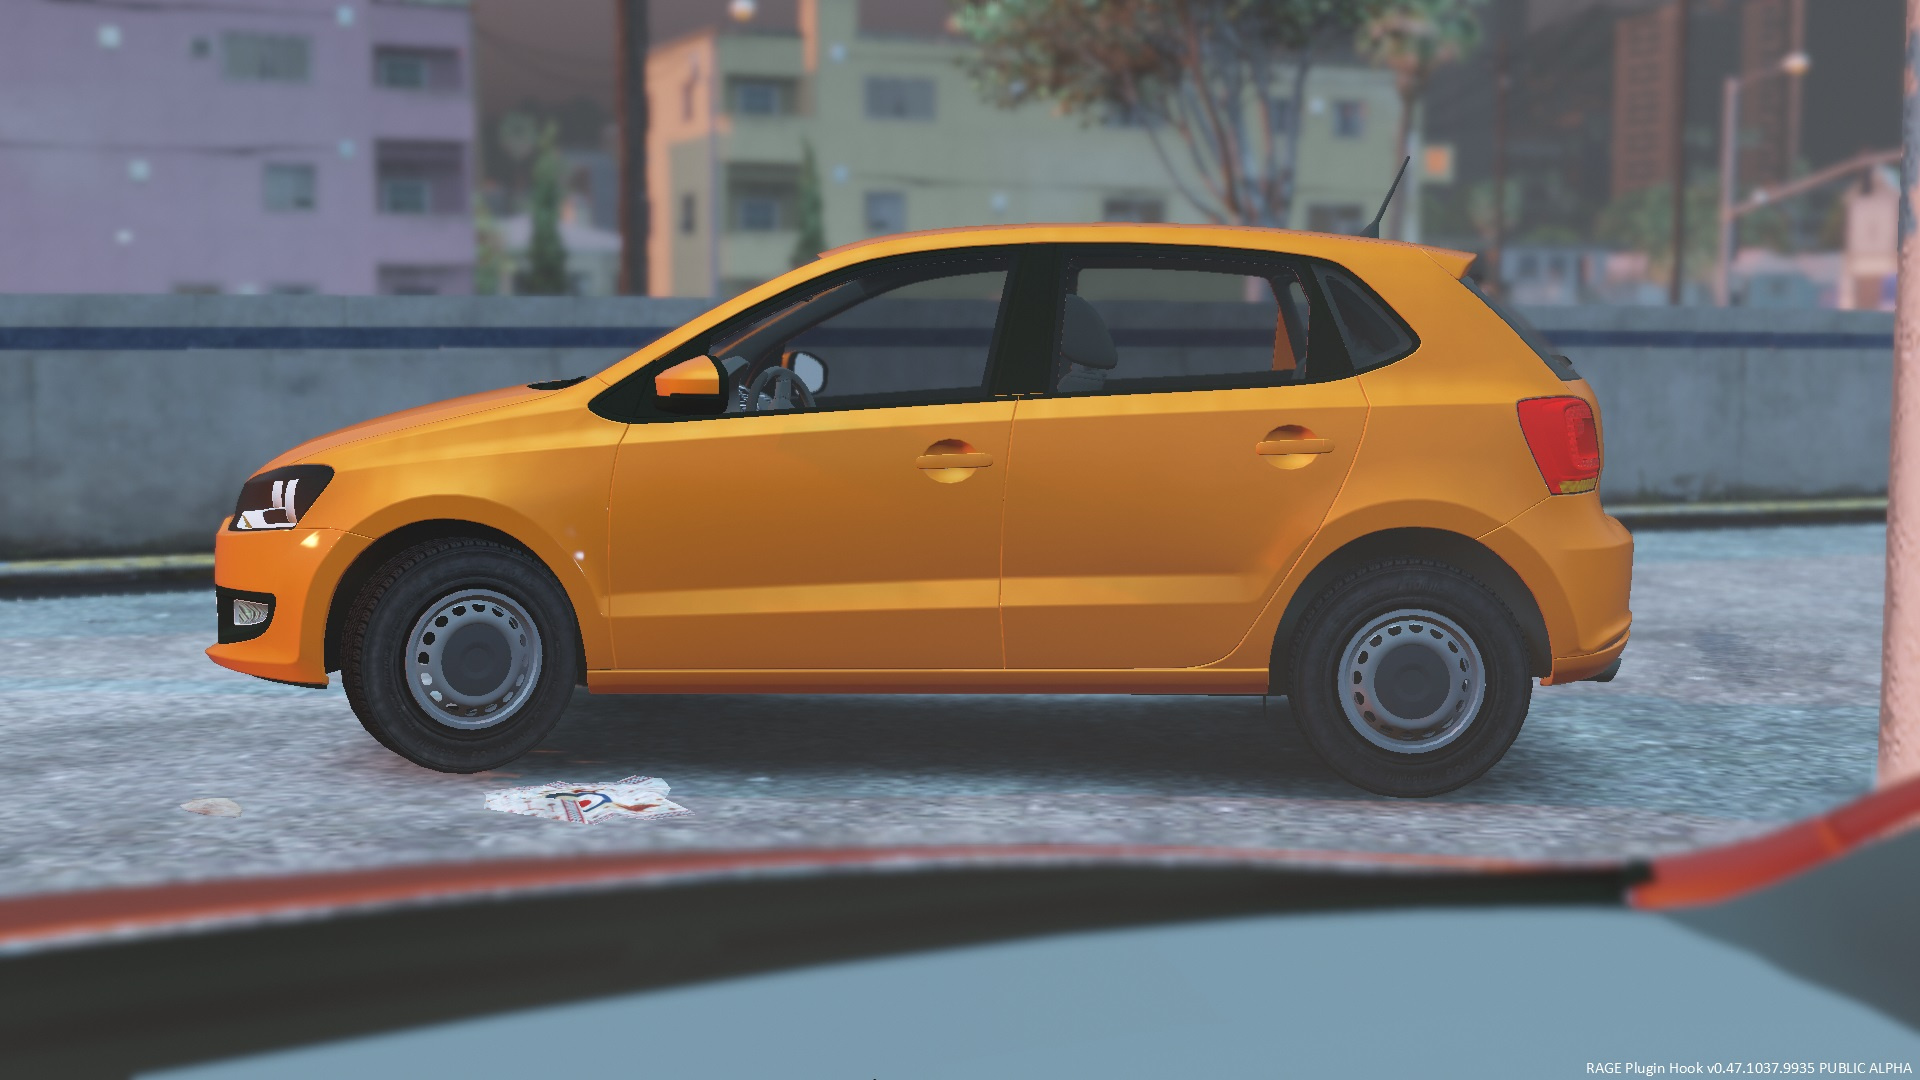 2011 volkswagen polo 5 door unlocked gta5. Black Bedroom Furniture Sets. Home Design Ideas